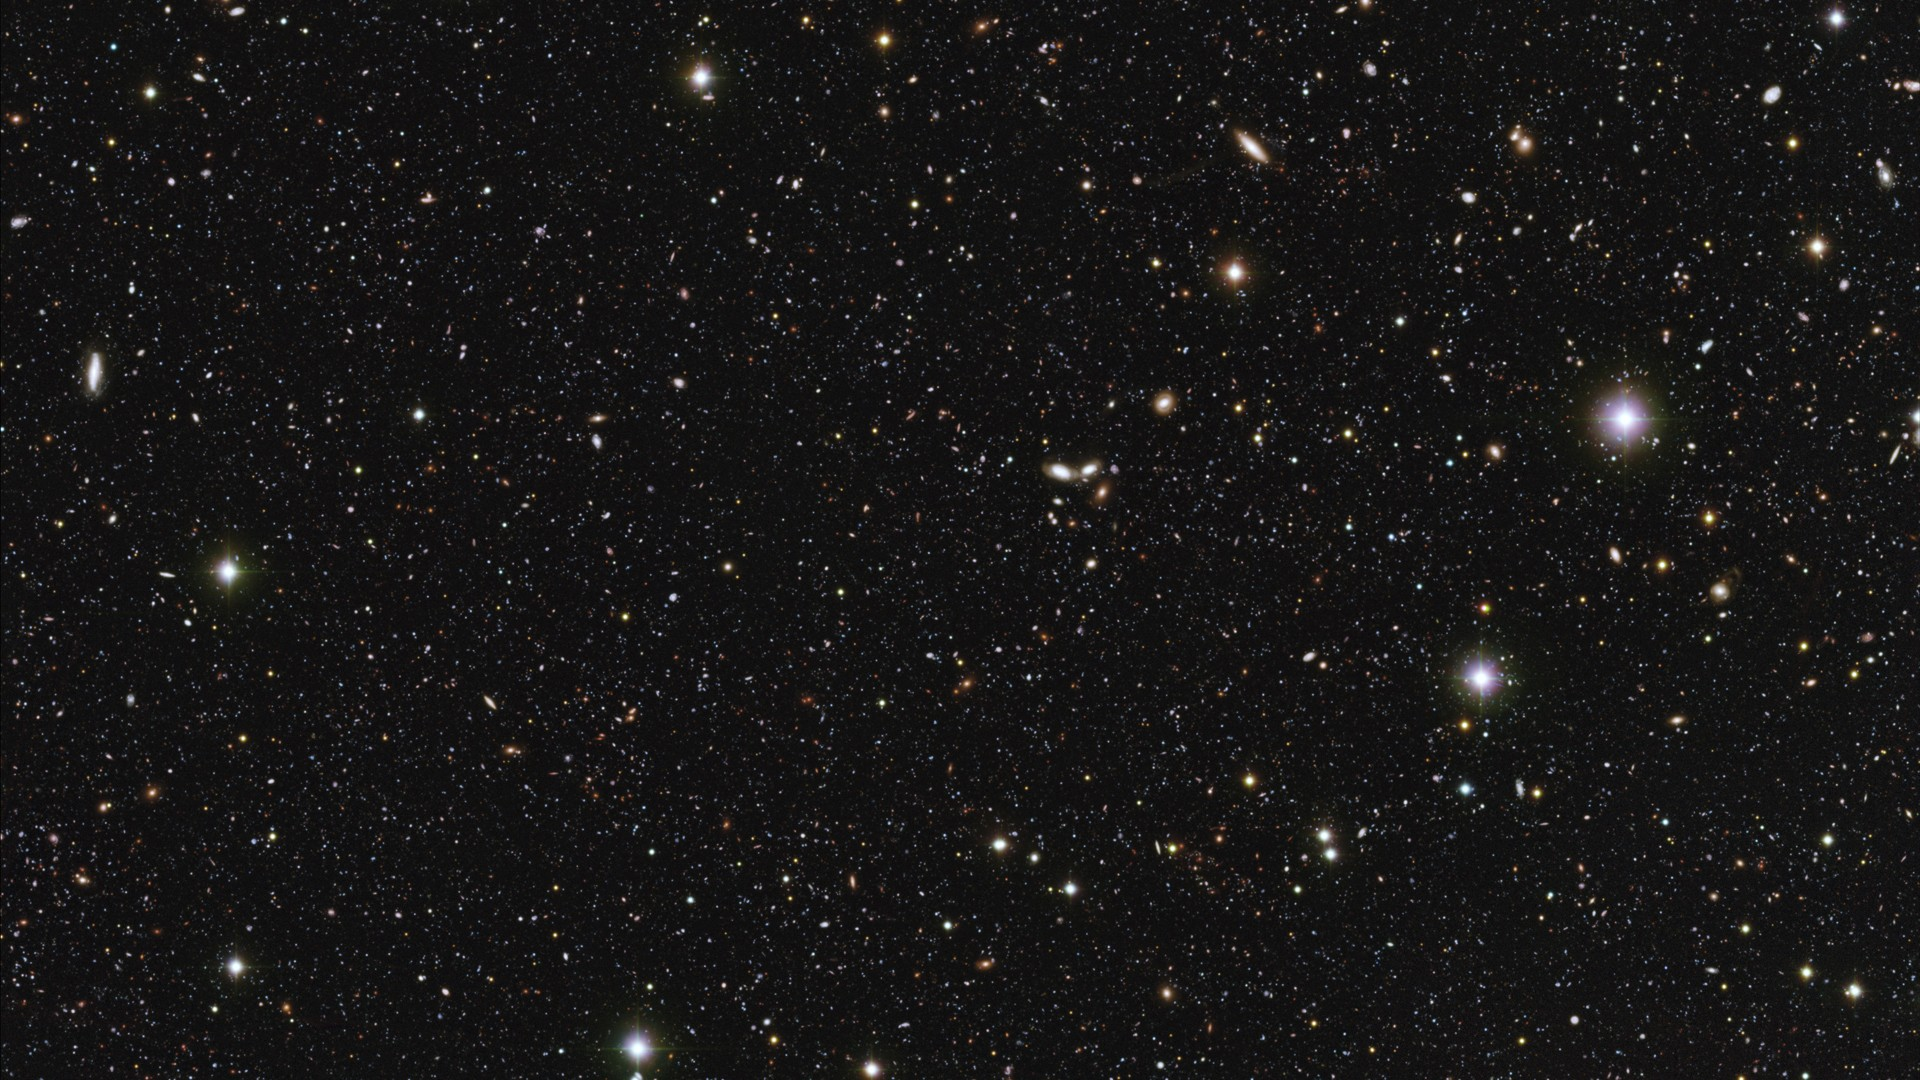 1920x1080 stars in outer